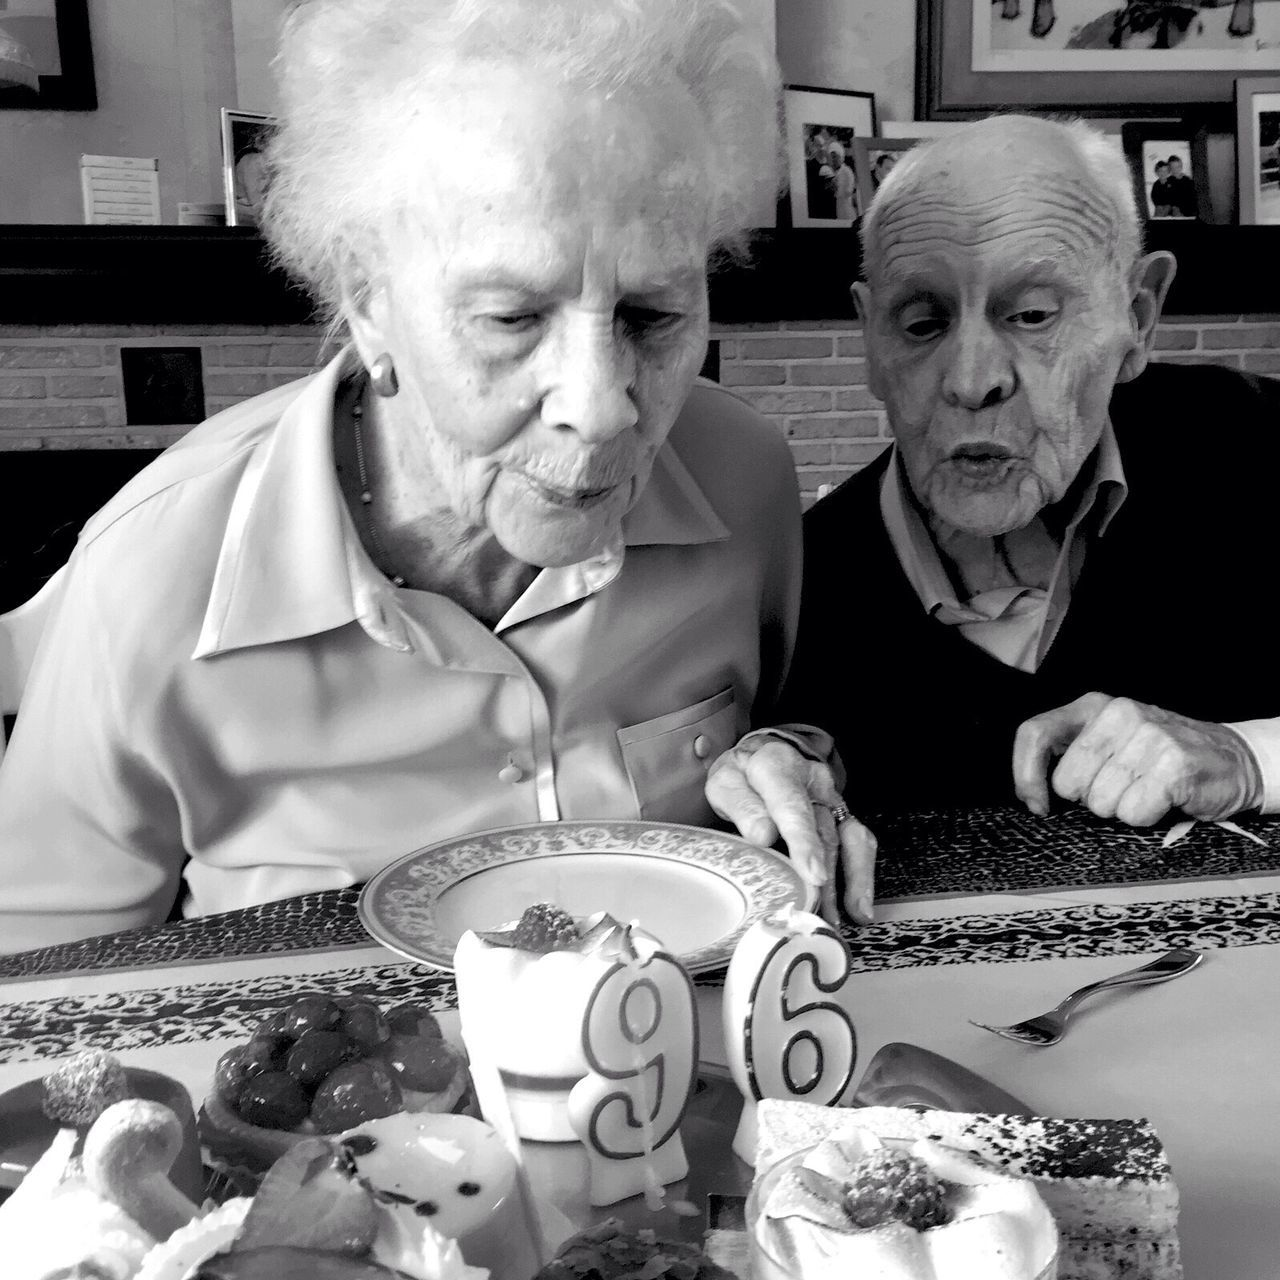 96 years old and still going strong. Bestgrandparents Goingfor100 HappyBirthday